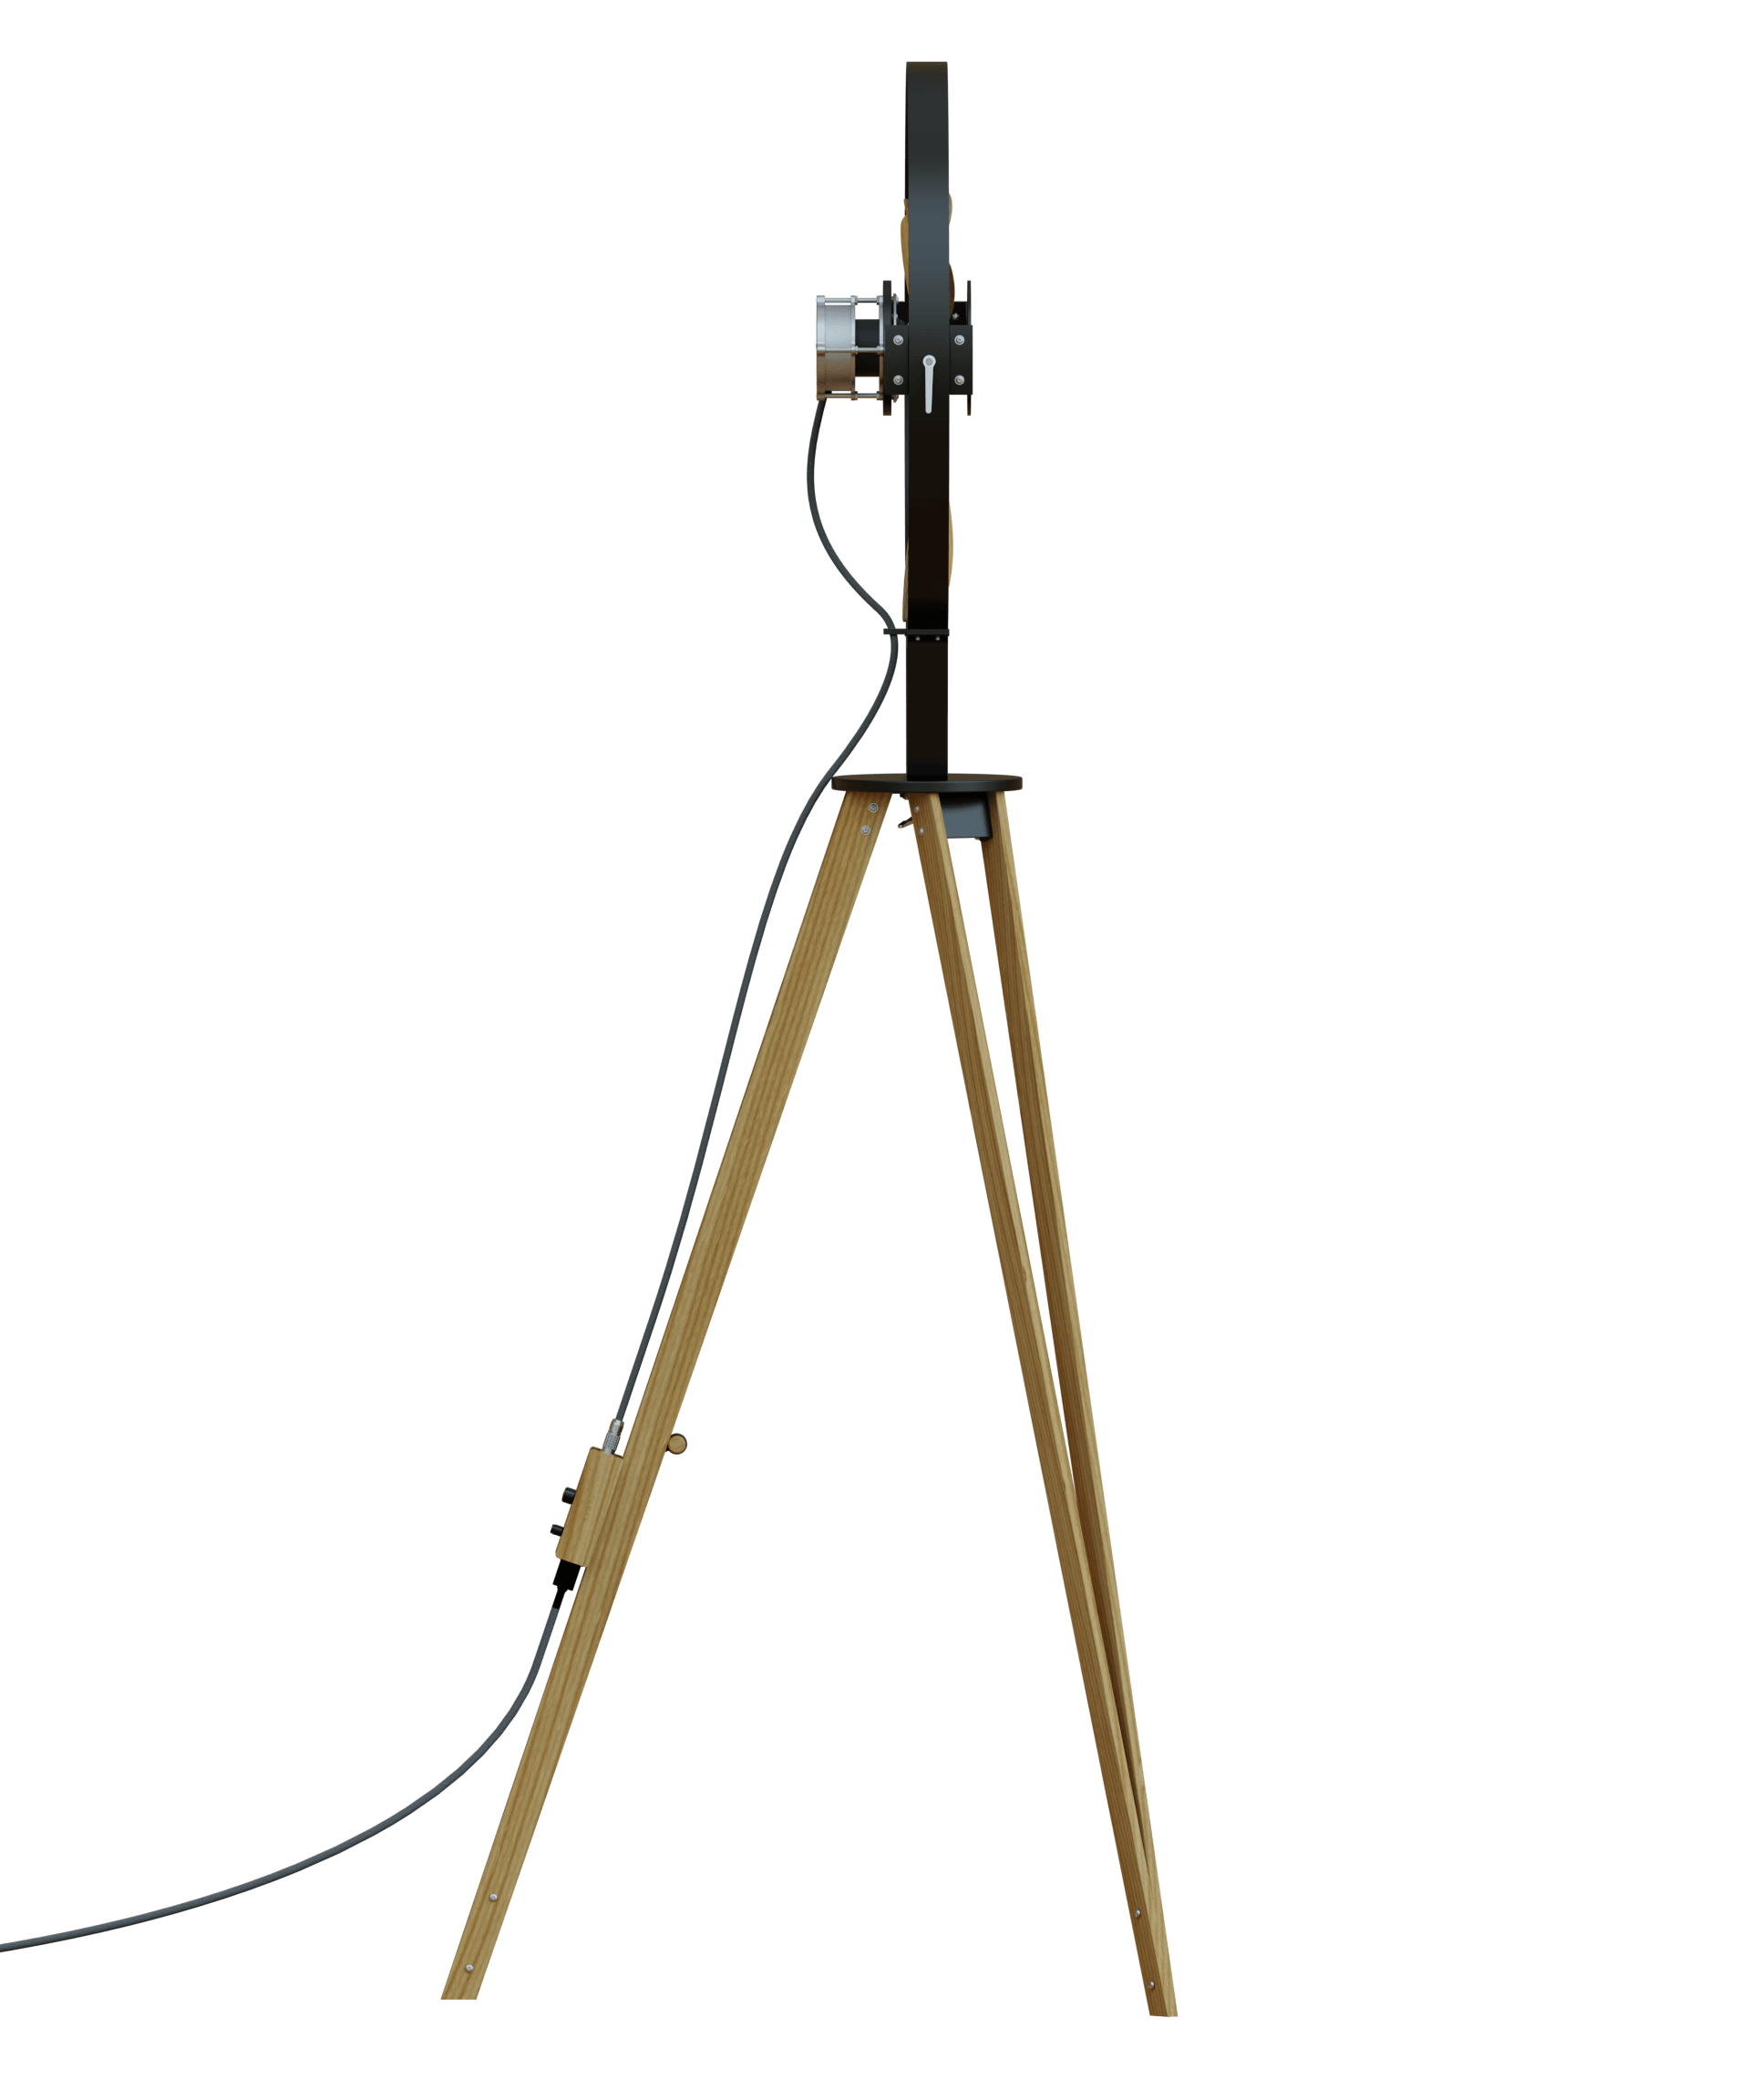 AURA Black - TTATO´s wooden tripod fan in side view